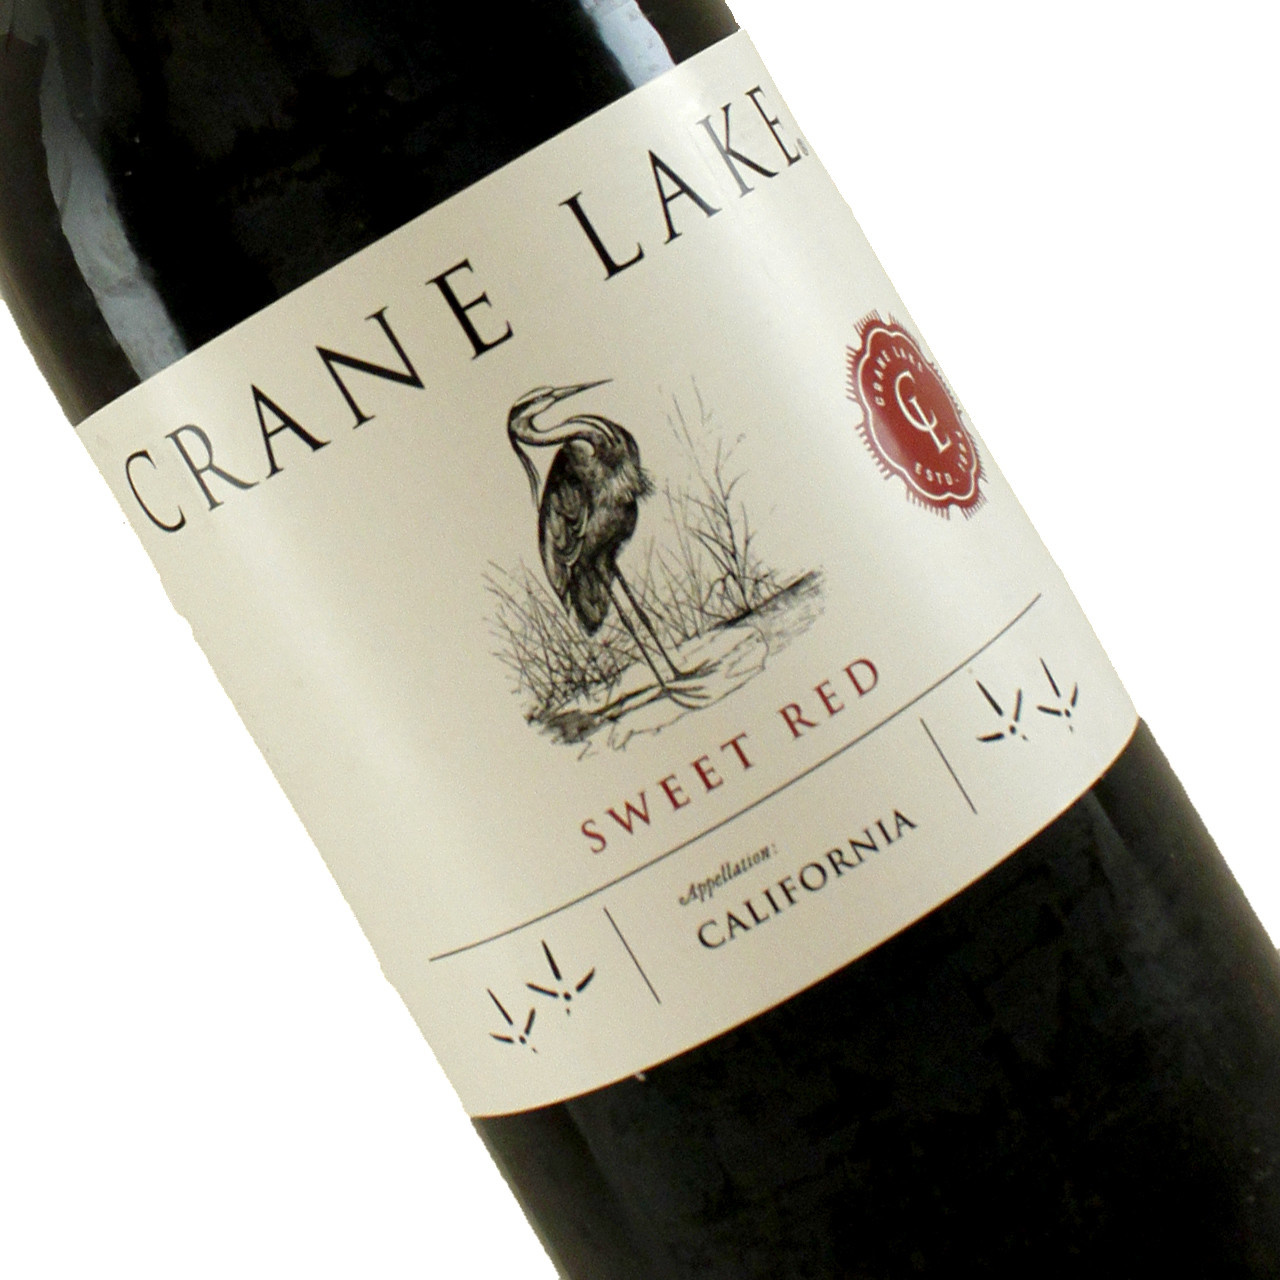 Crane Lake Sweet Red Table Wine, California